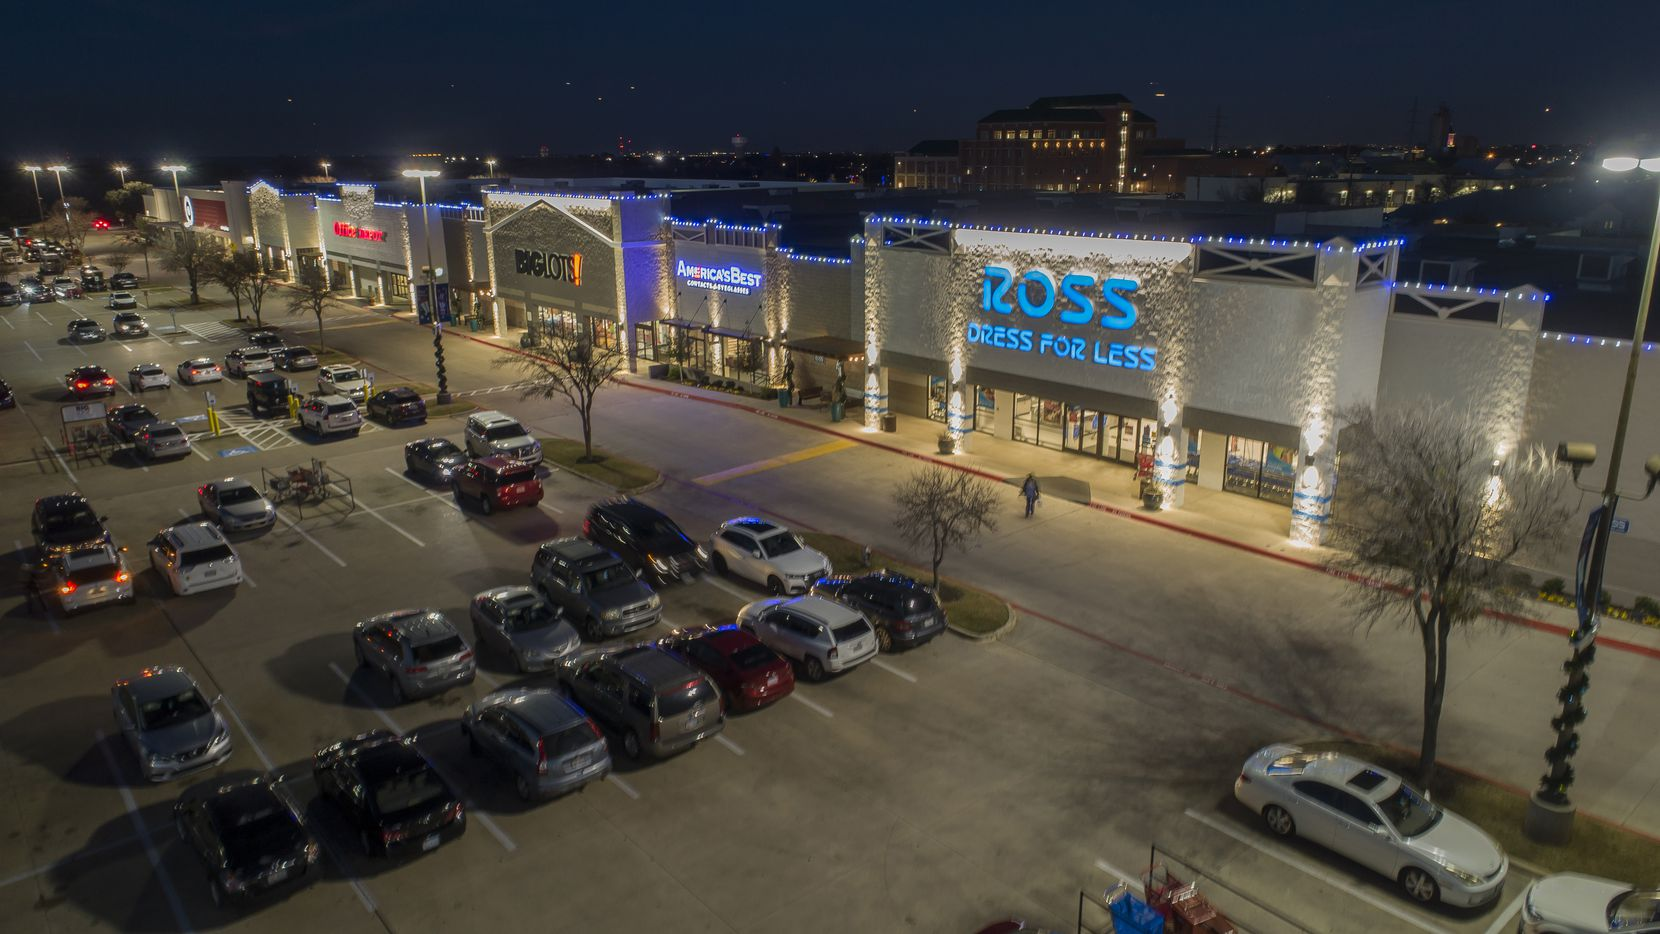 Redwing Shoes leased retail space in the Grapevine Town Center in Grapevine.